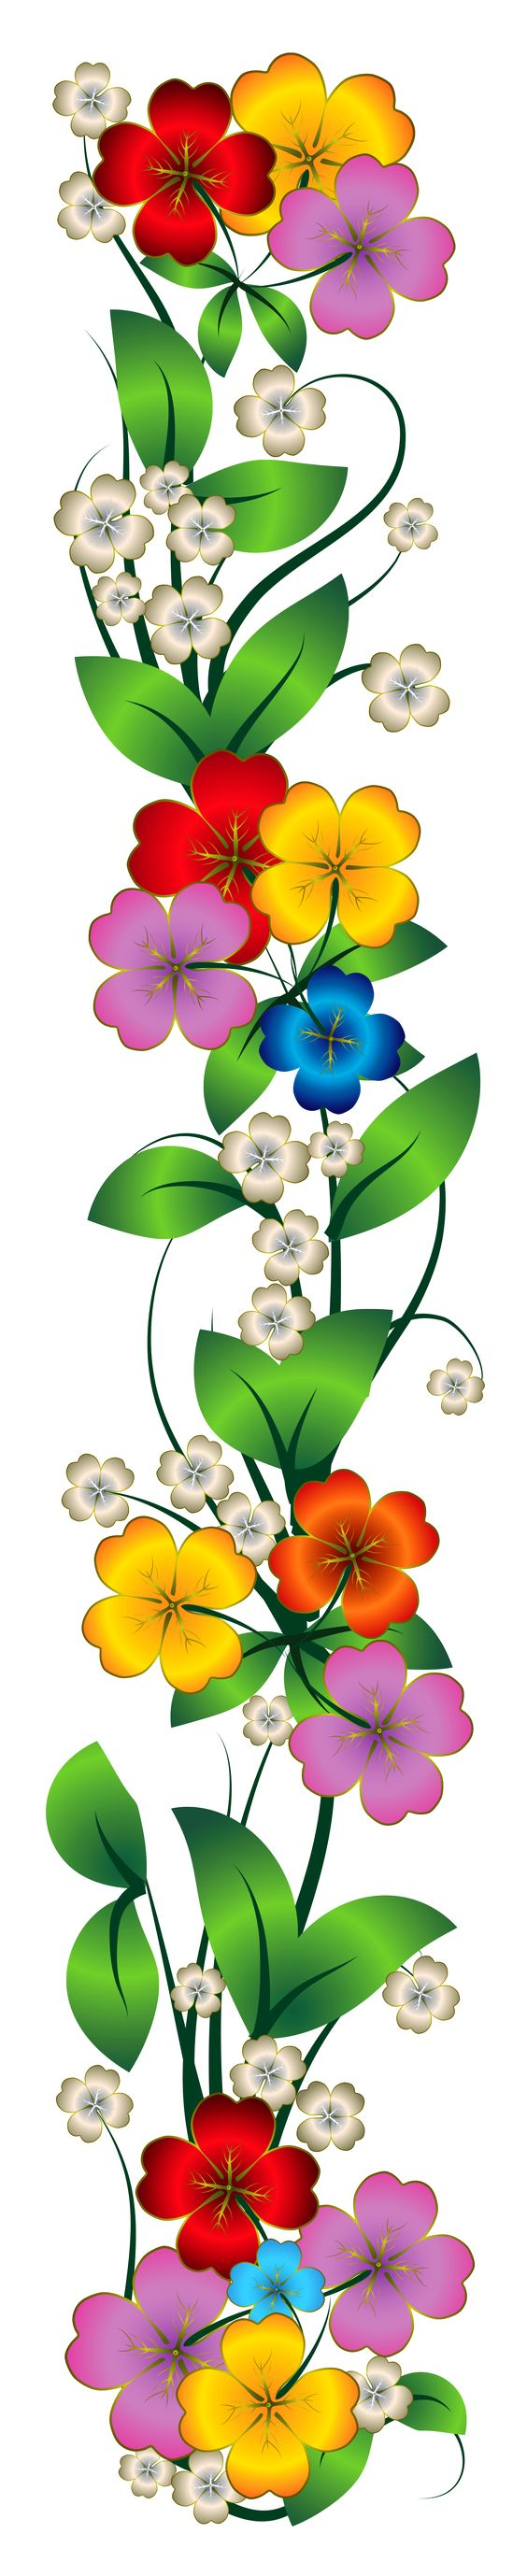 Flowers Decor PNG Clipart.